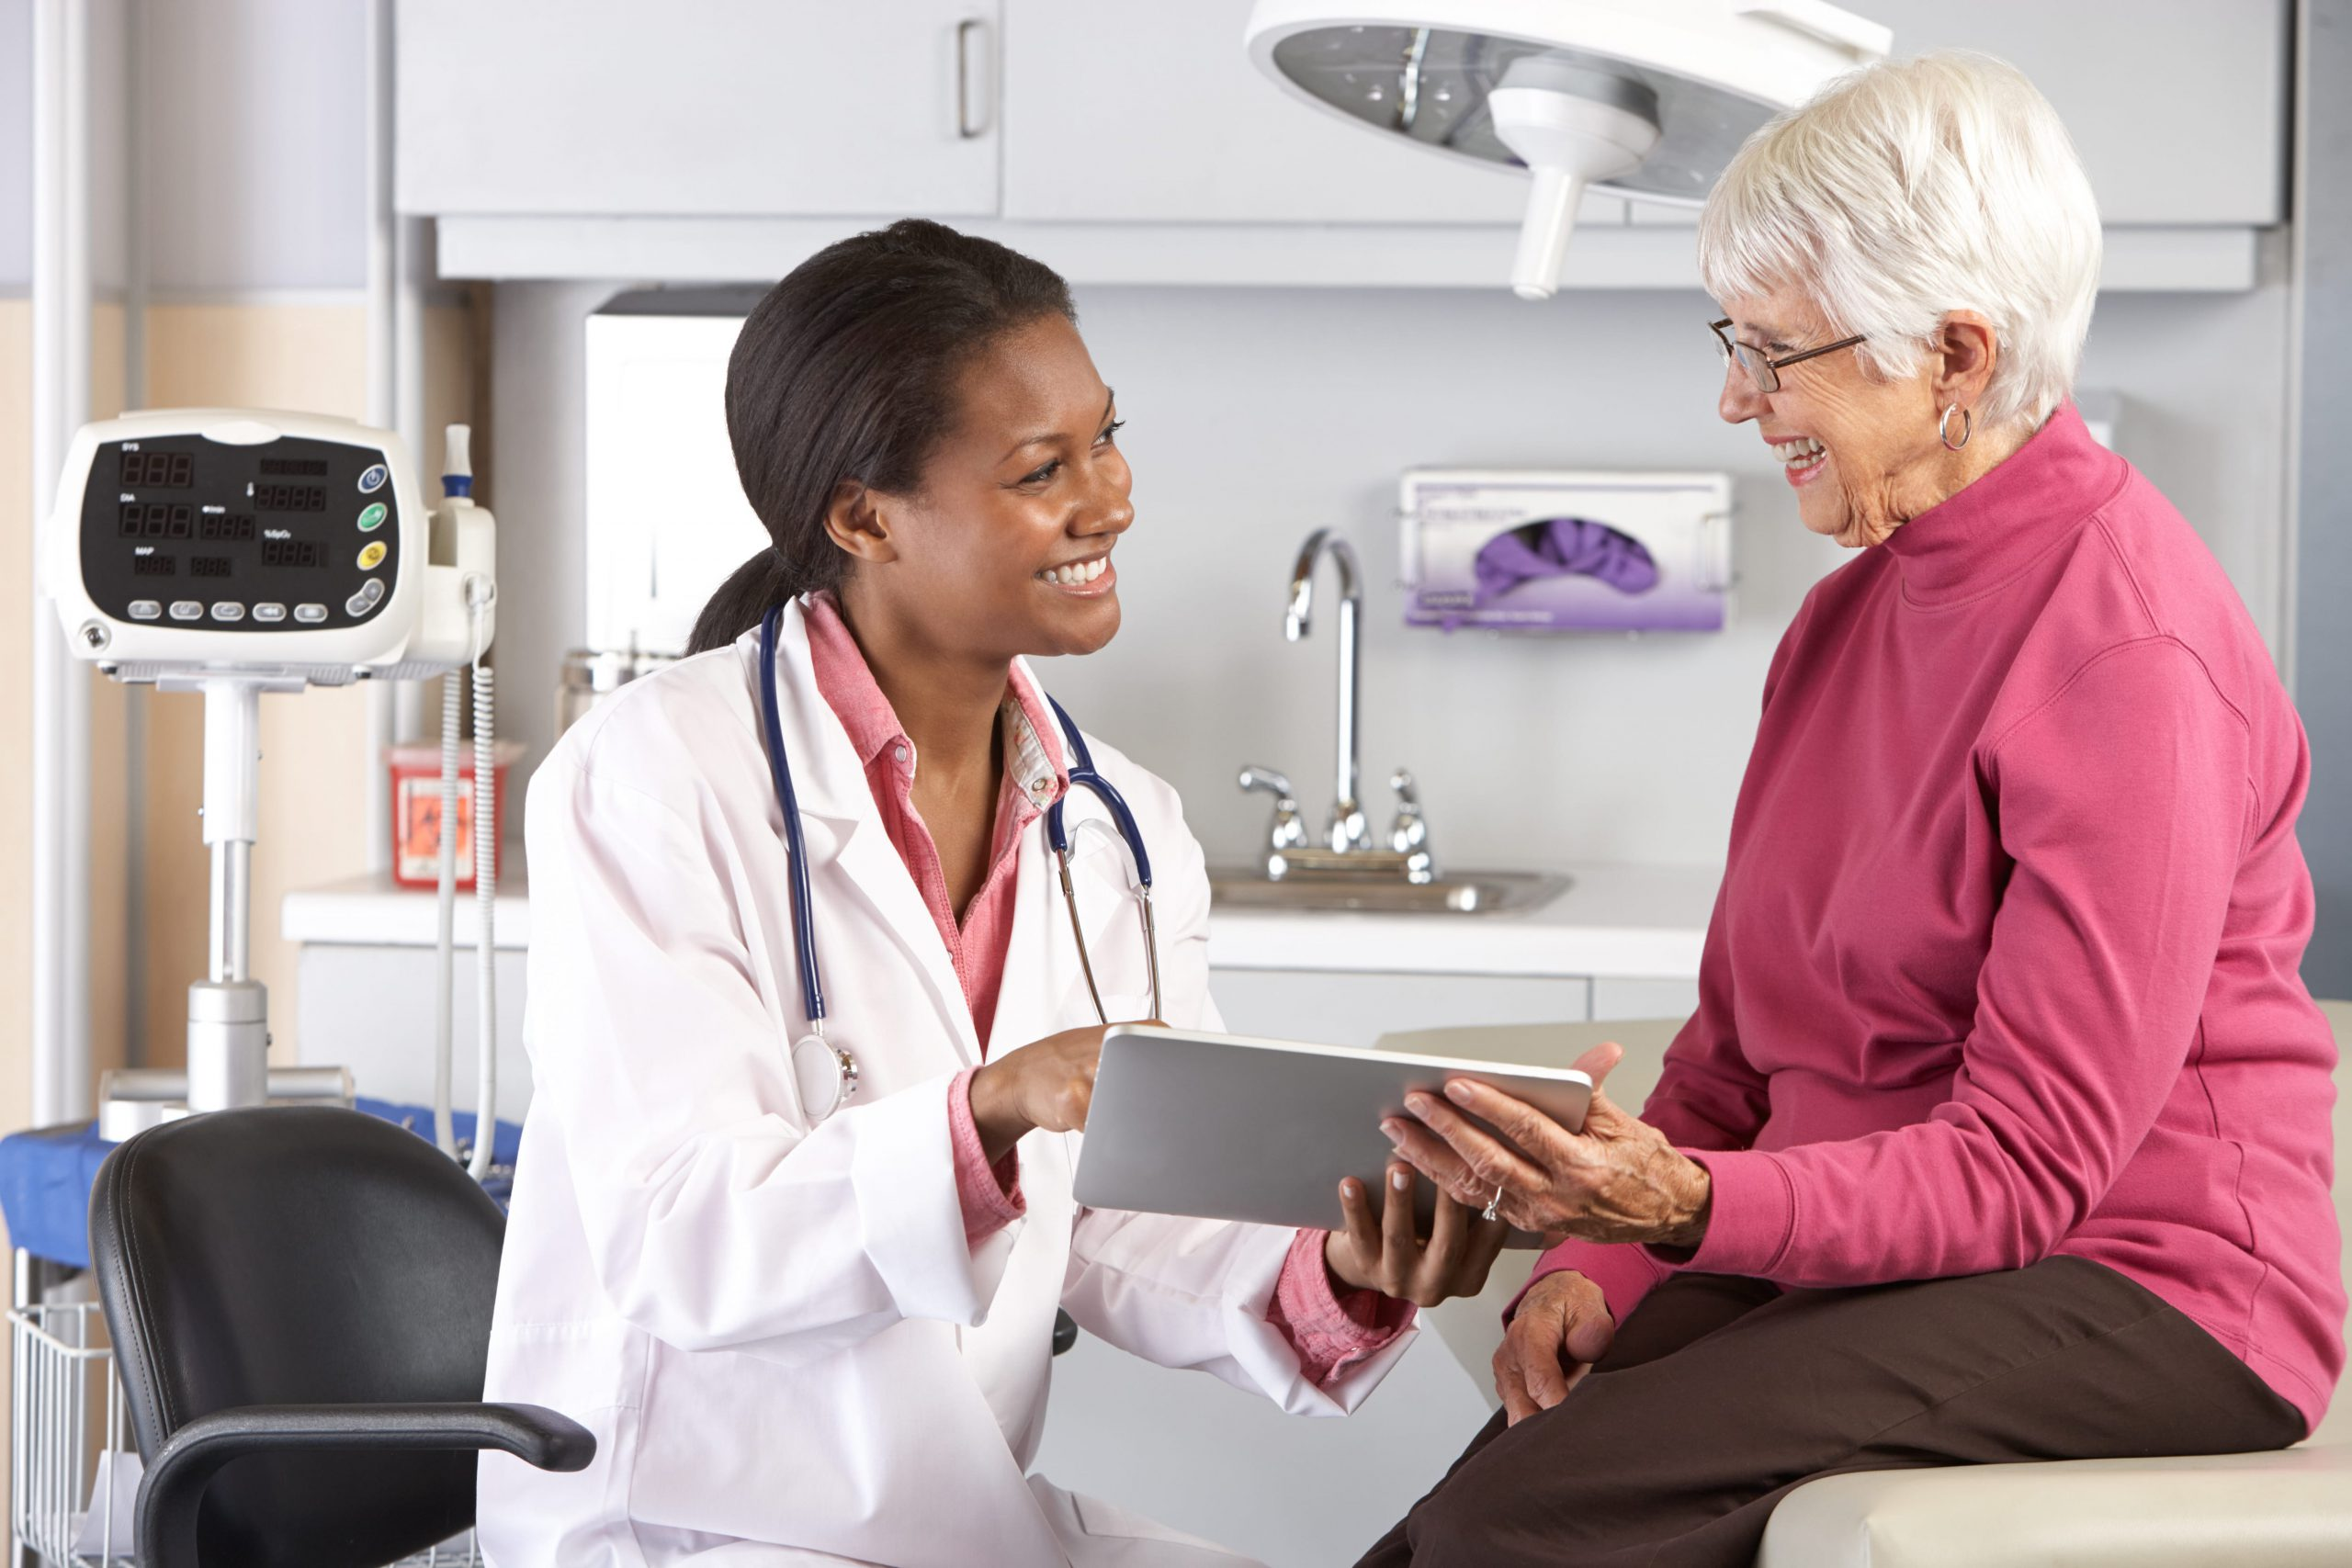 The benefits of clinical decision support